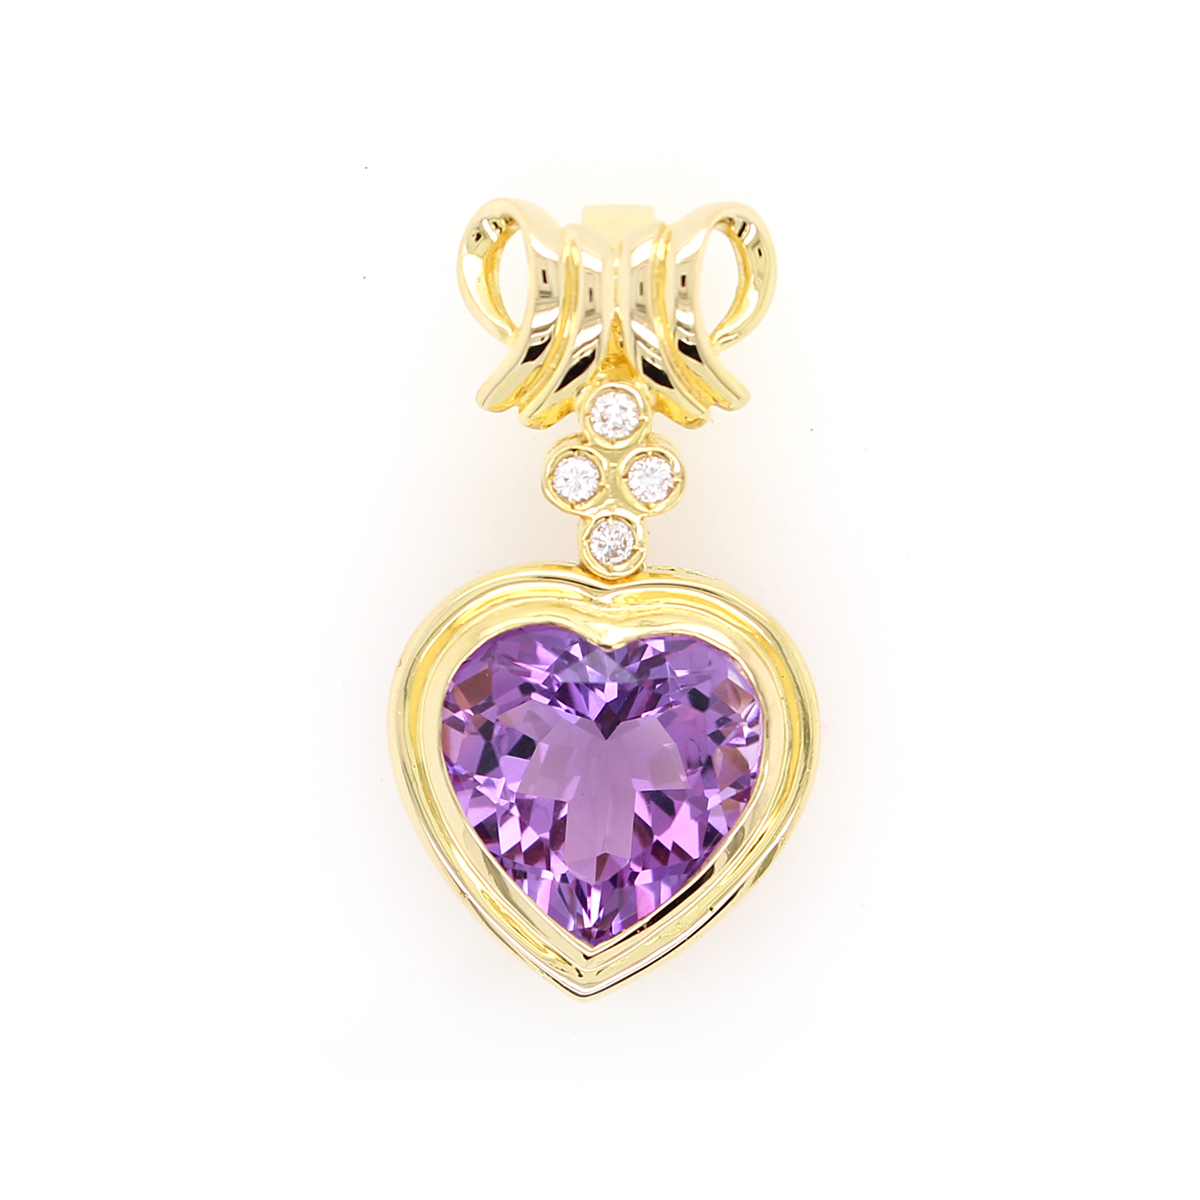 Vintage 18 Karat Yellow Gold Heart Shaped Amethyst and Diamond Pendant